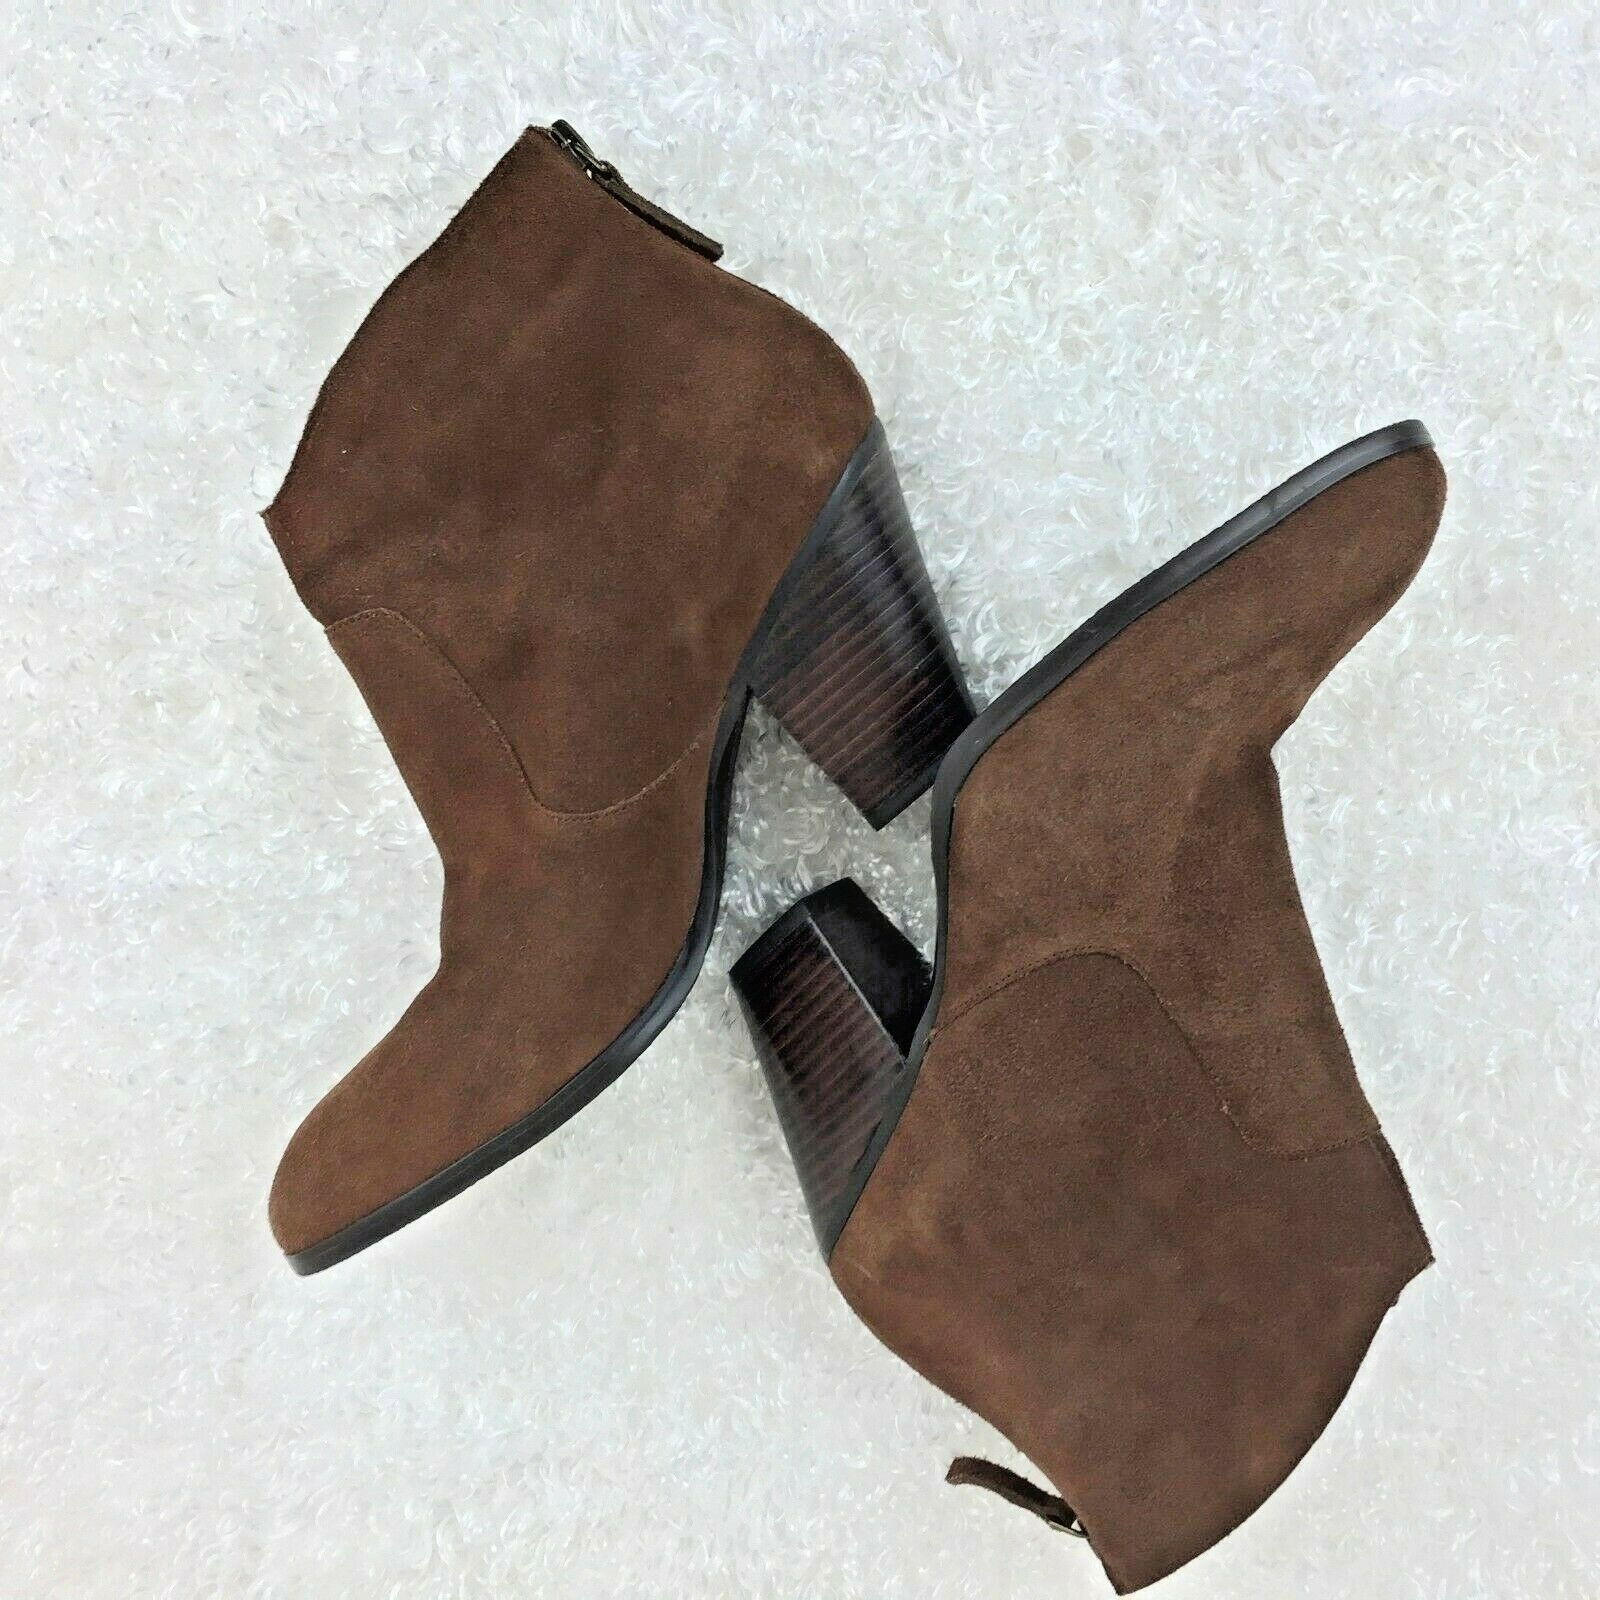 Tesori Womens Brown Leather Suede Shoe Boots Zipper Back 8.5M